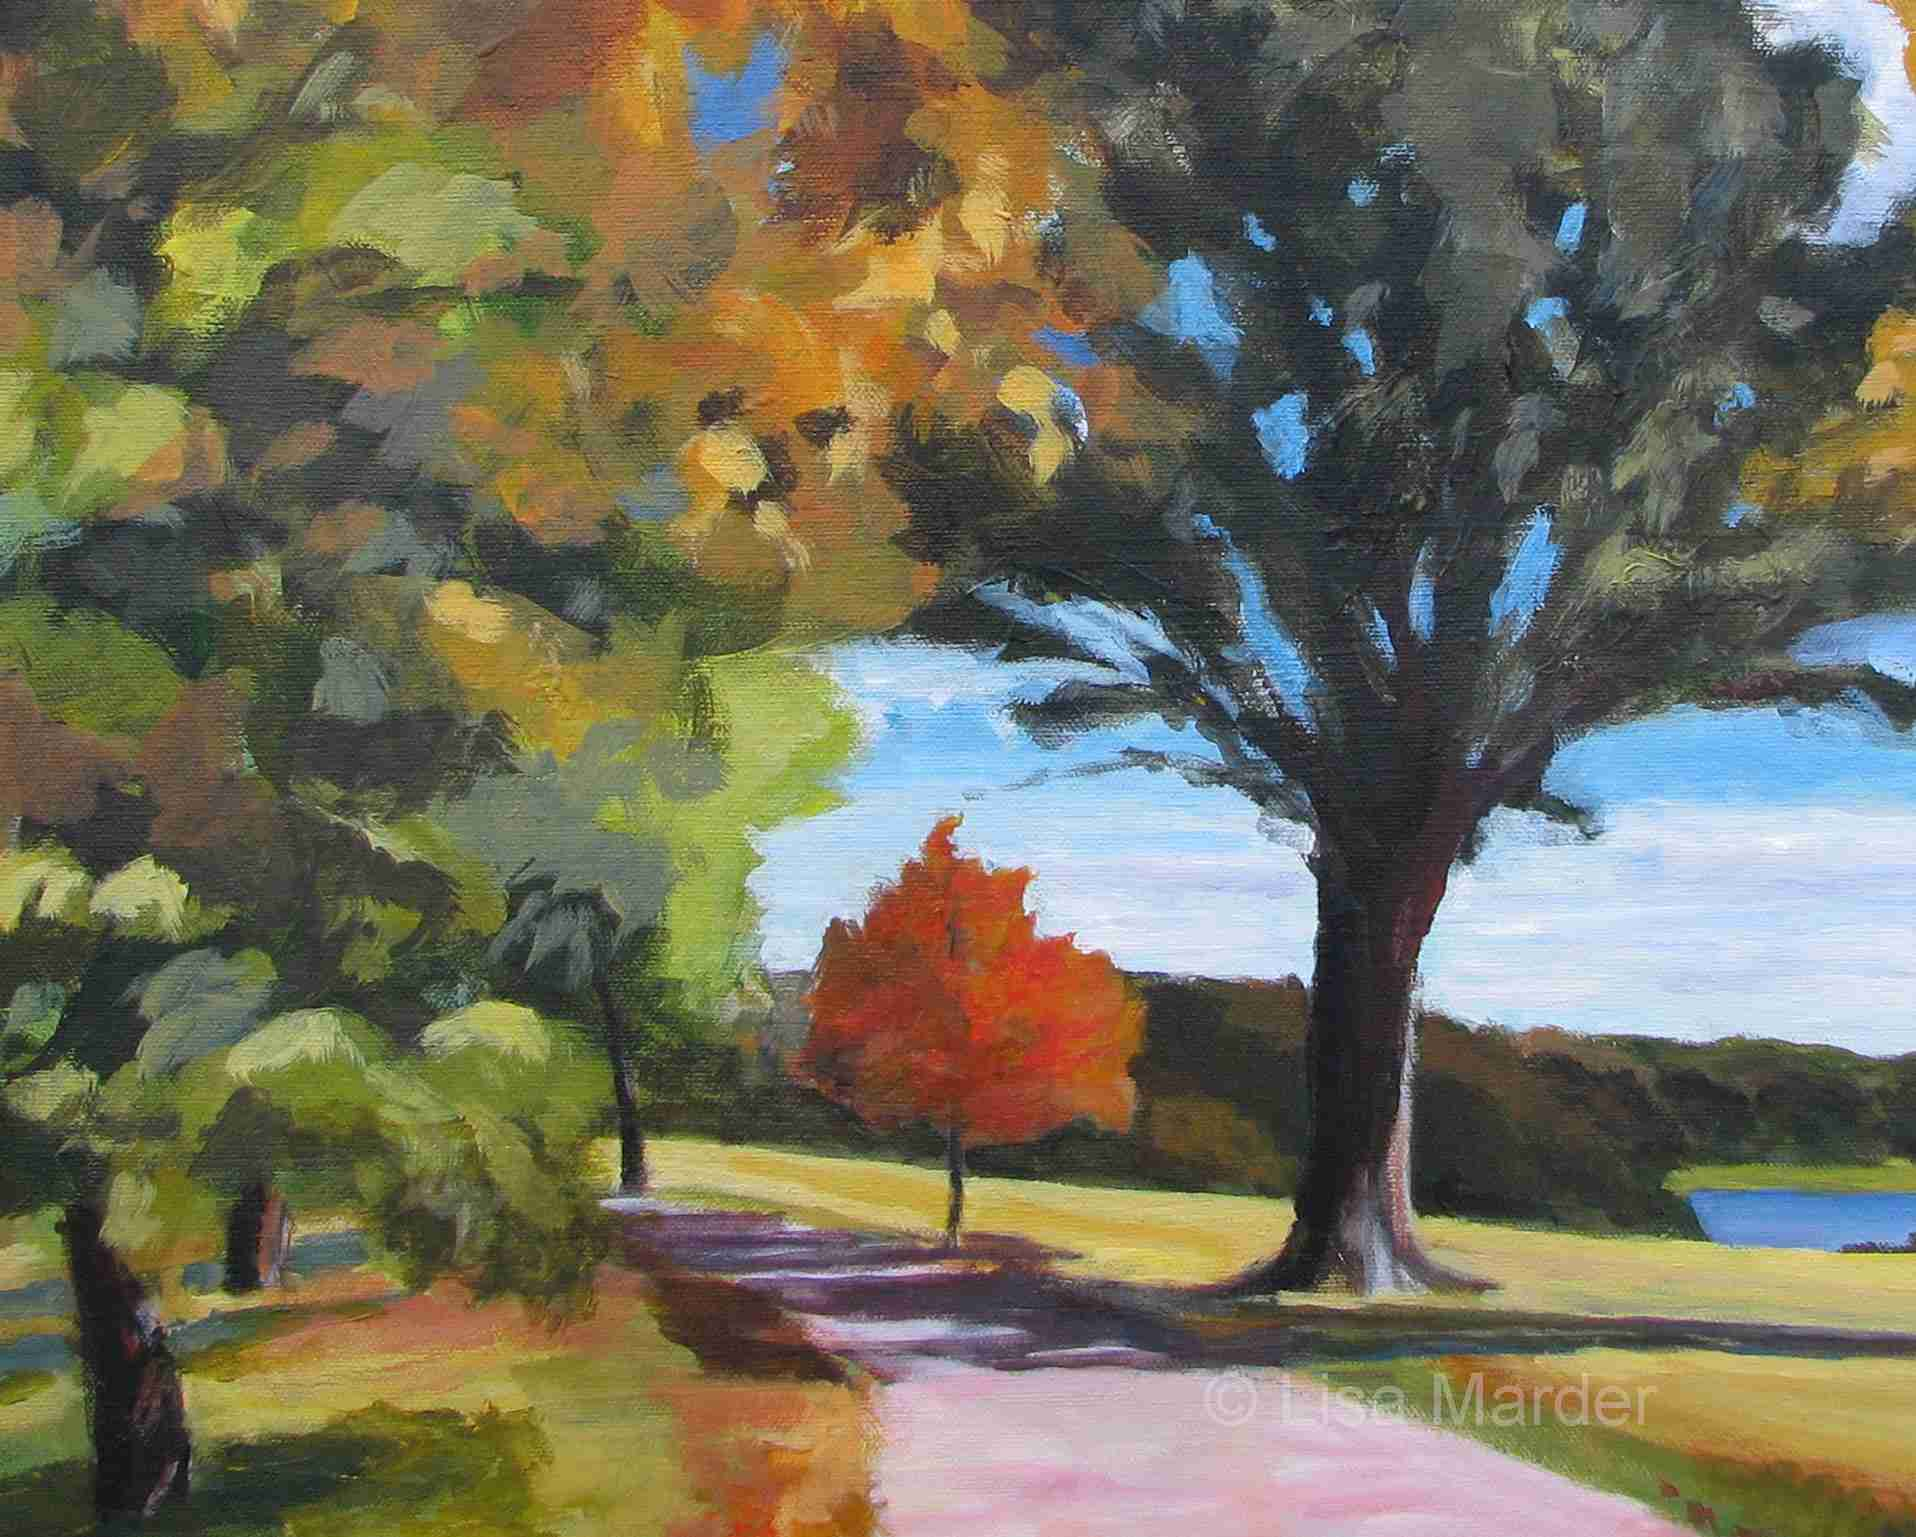 Painting of autumn trees by Lisa Marder showing shadows and massing of leaves on trees.